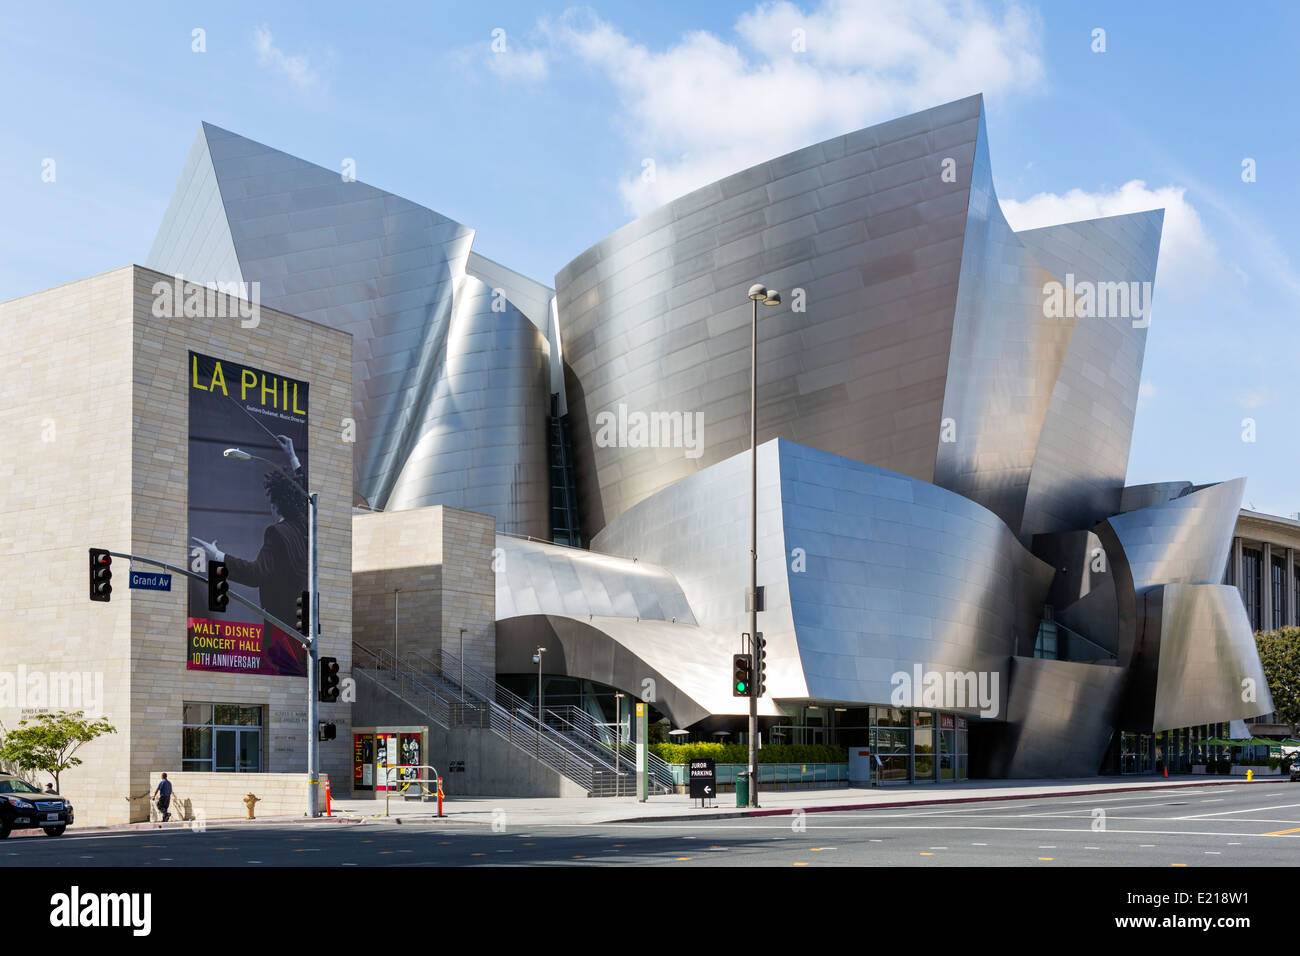 The Frank Gehry designed Walt Disney Concert Hall, Grand Avenue in downtown Los Angeles, California, USA - Stock Image